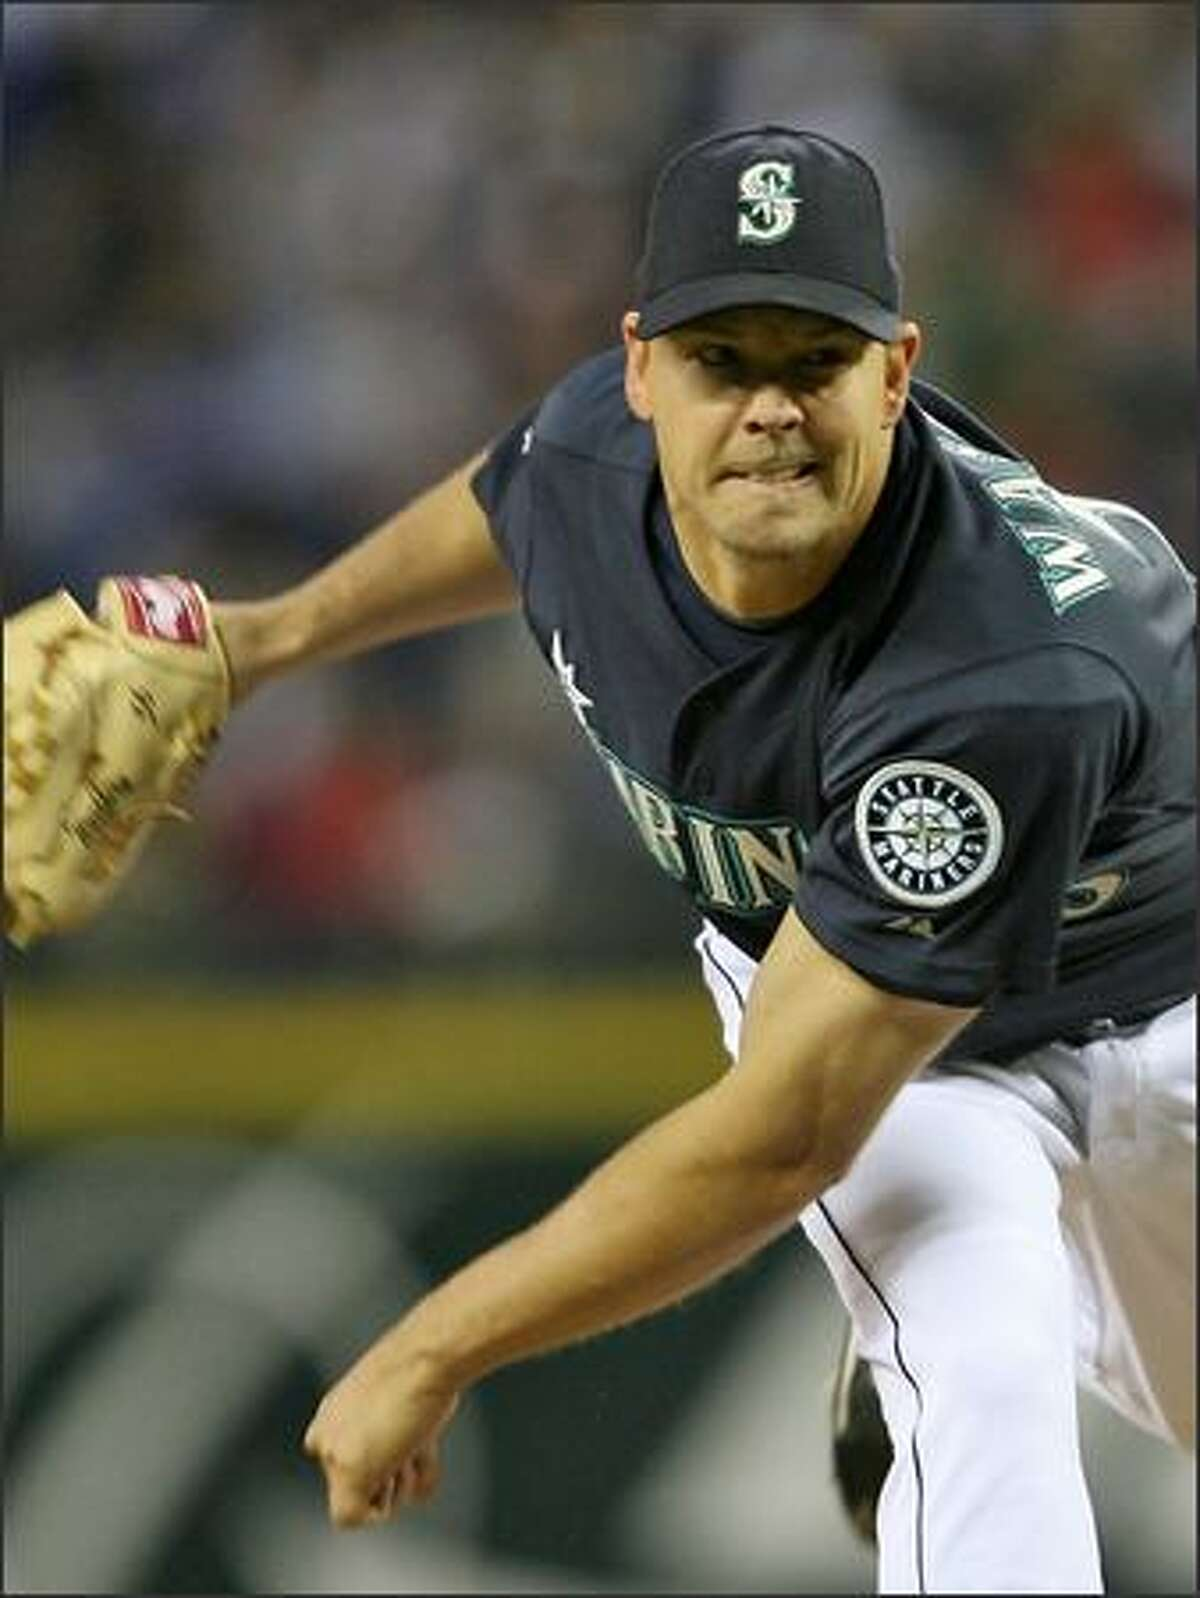 Mariners starter Jarrod Washburn pitches against the New York Yankees during the seventh inning. He held the Yankees scoreless for eight innings to win 3-0.